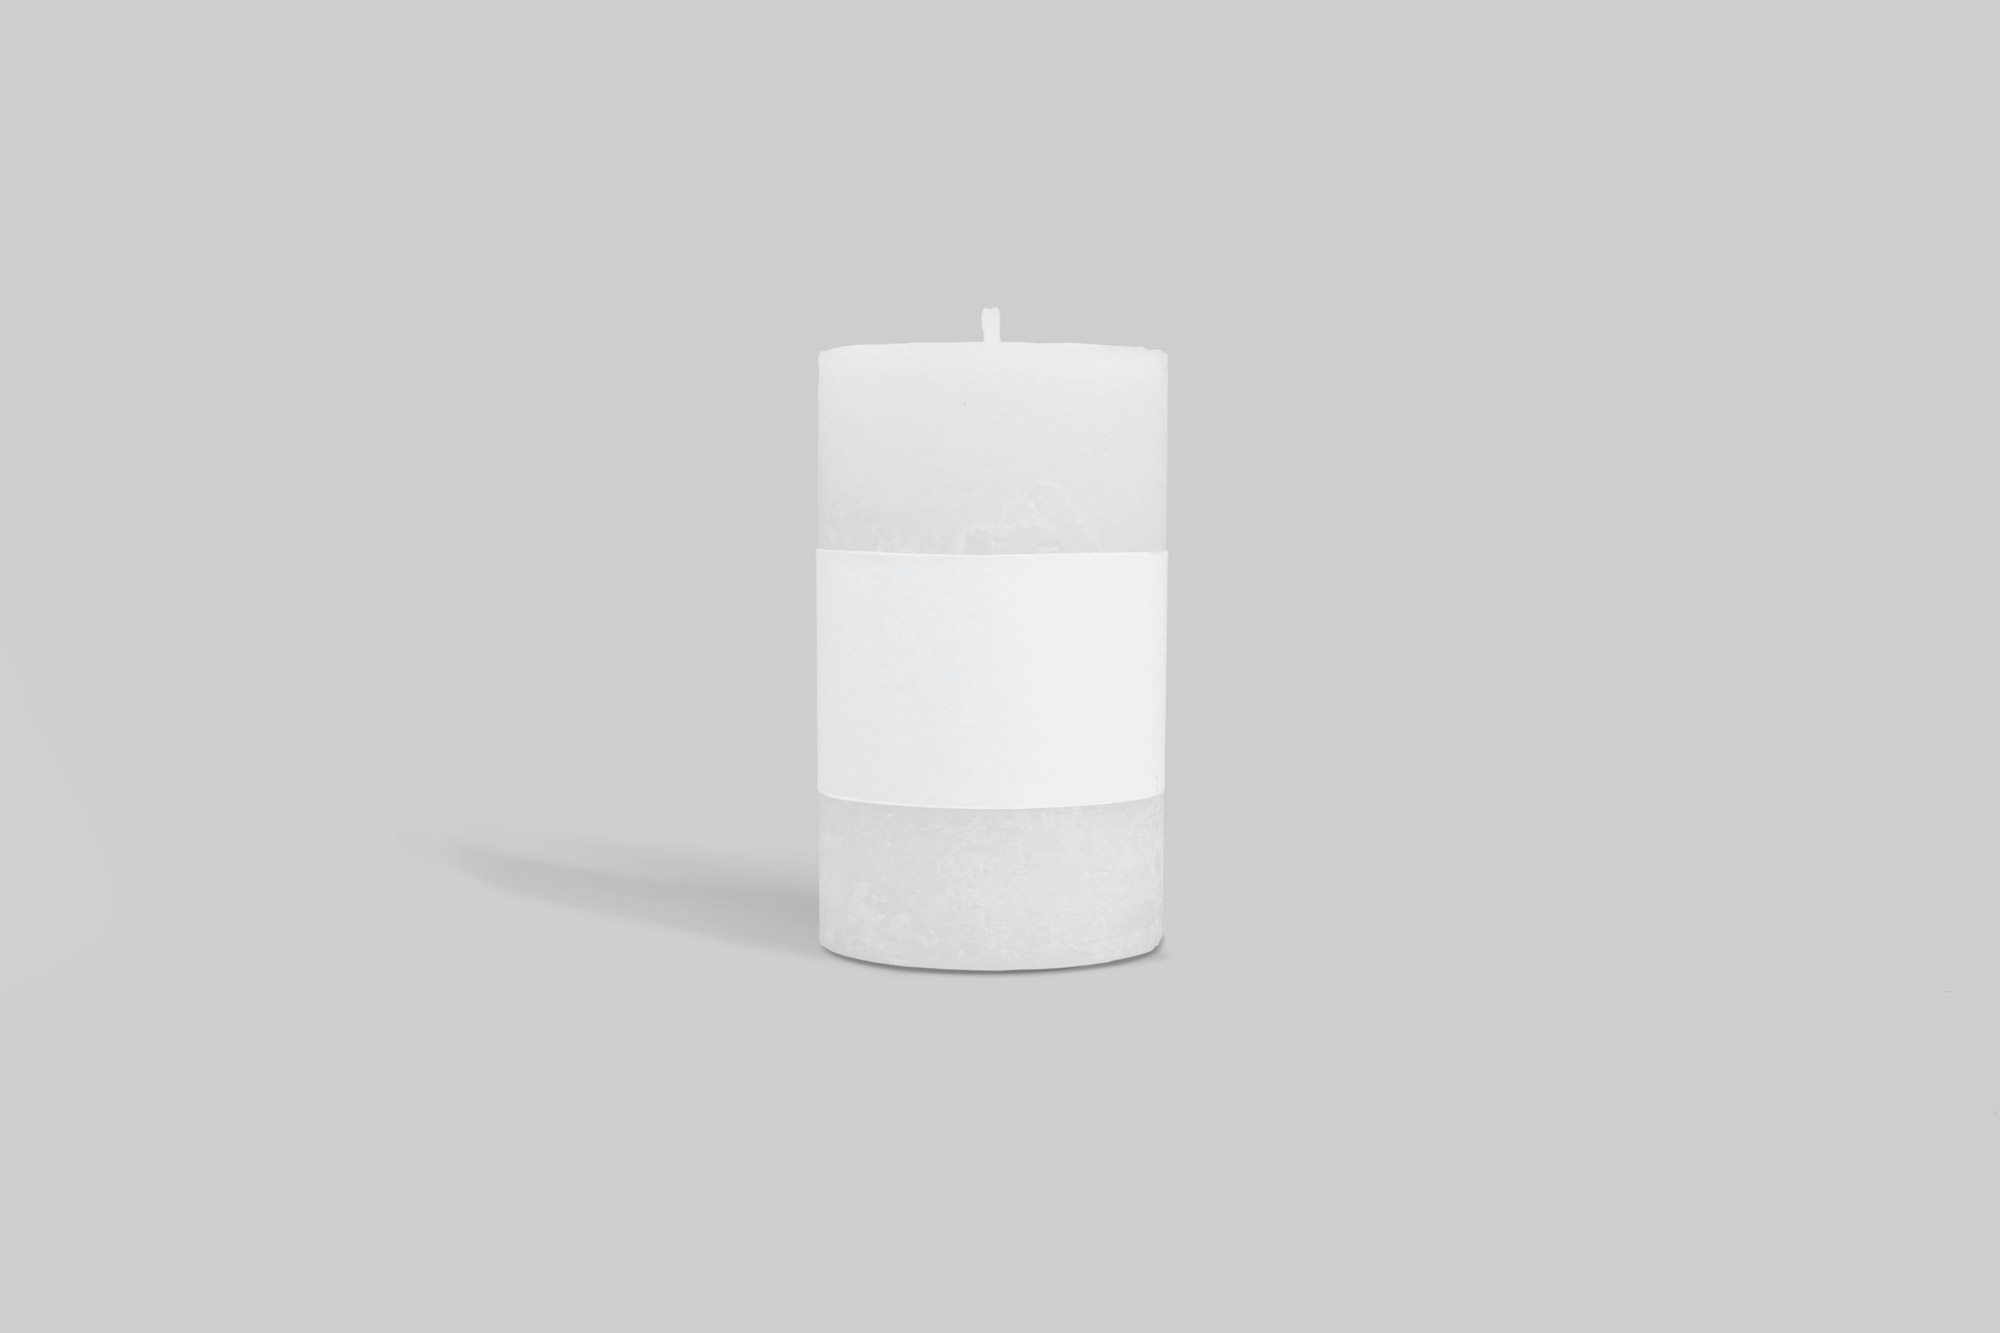 Candle Mock-up Pack #1 example image 2